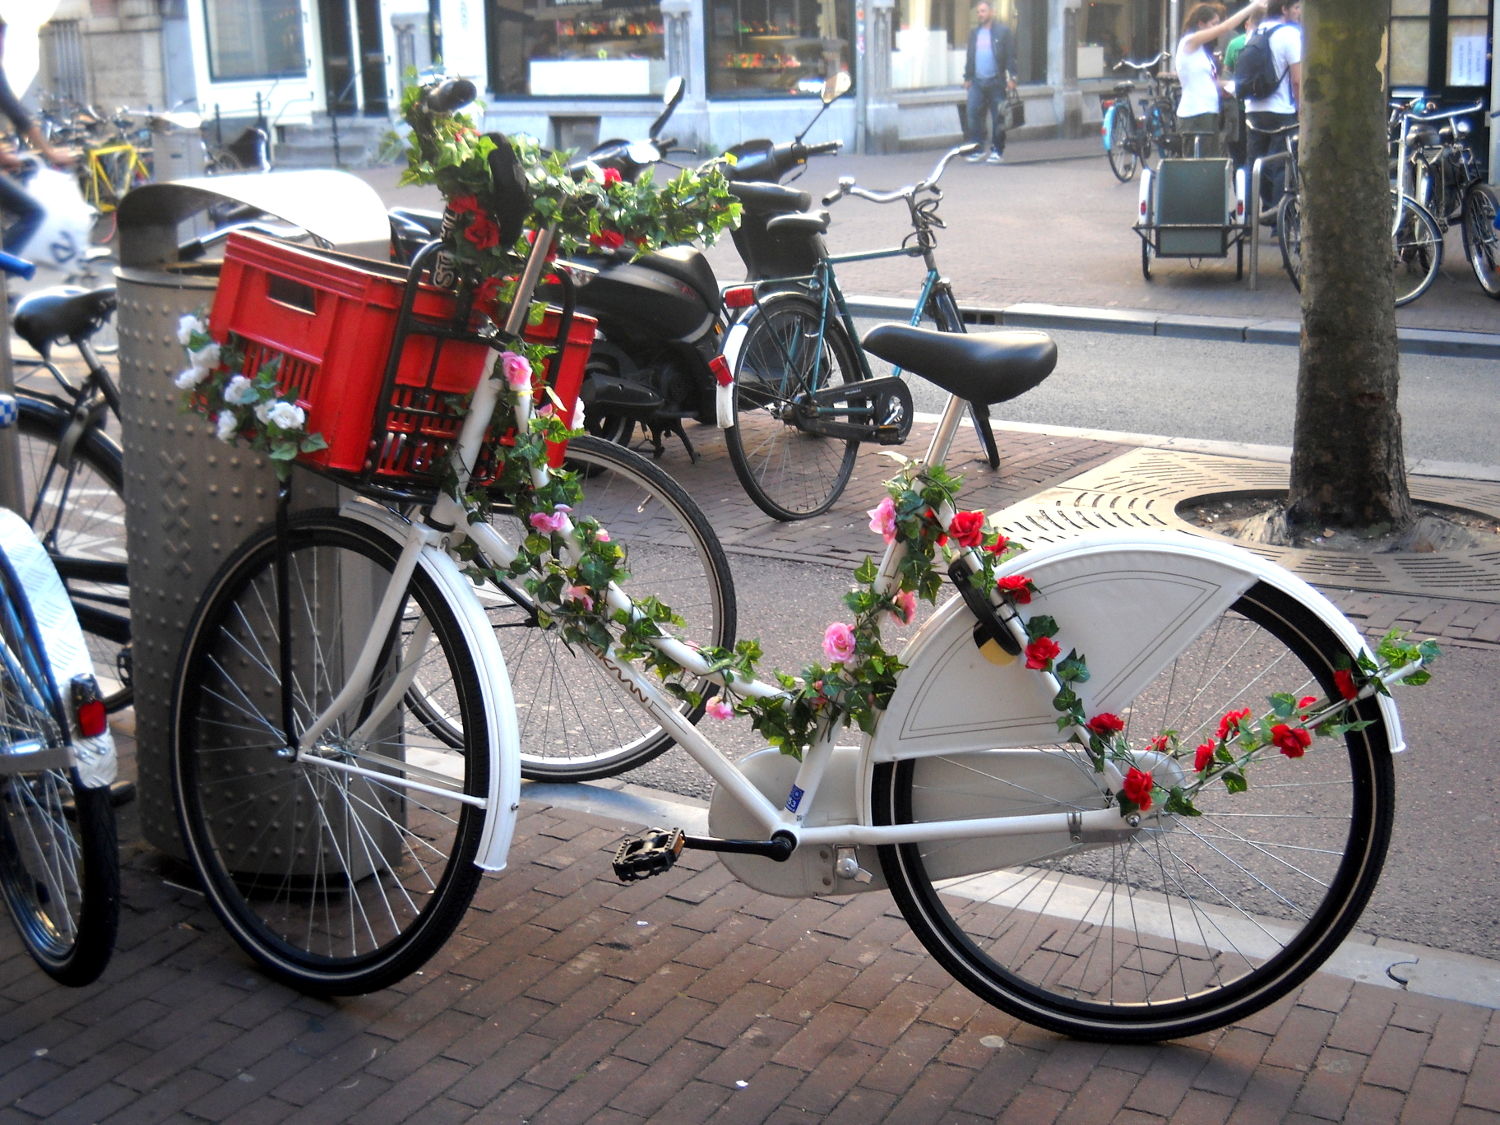 Beautiful Bicycles with flowers in Amsterdam